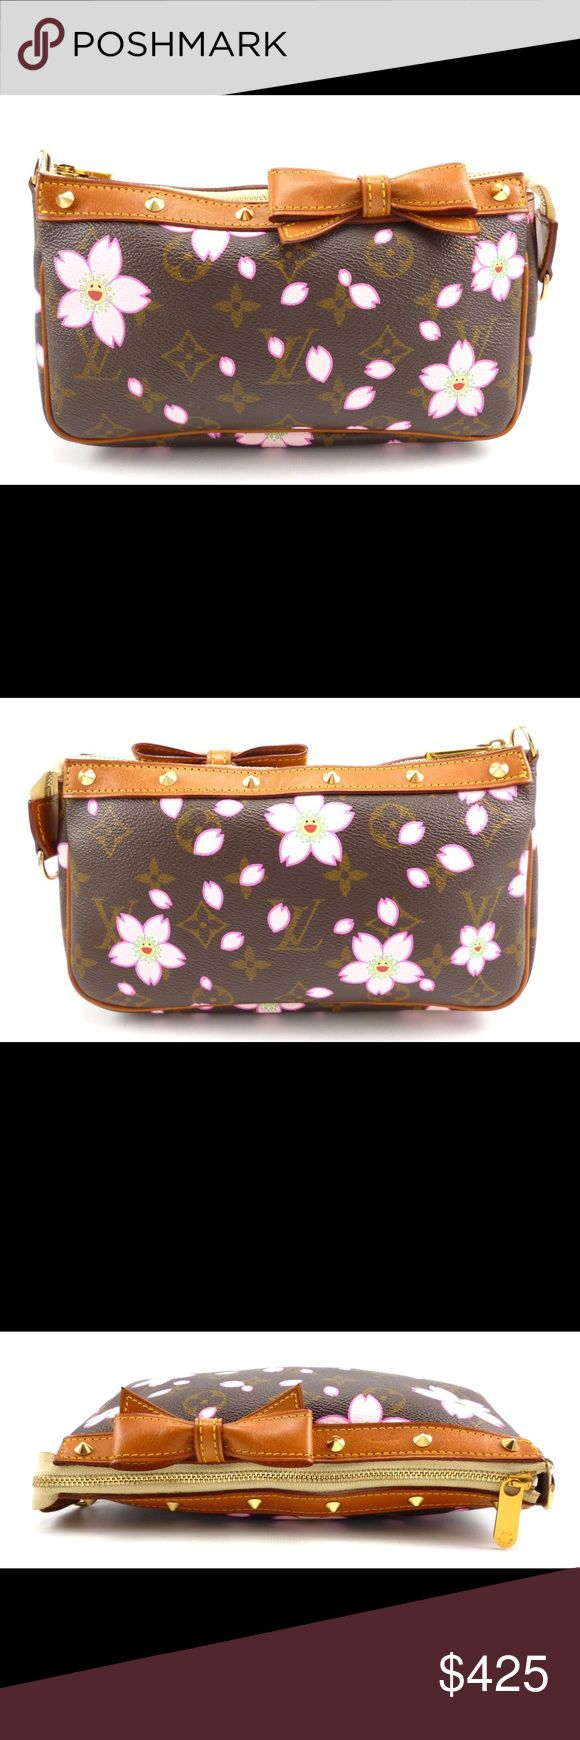 Louis Vuitton Cherry Blossom Monogram Pouchette Authentic Louis Vuitton Takashi Murakami Cherry Blossom Monogram Canvas Pouchette. Multi-color cherry blossoms with gold tone hardware, natural leather trim, bow in the front with stud accents. Suede lining and zip top closure makes this the perfect bag for your everyday essentials. In wonderful condition this bag seems to have been used only a few times. It is missing the leather strap. Guaranteed Authentic! Date Code: AR0013 (France 2003)…